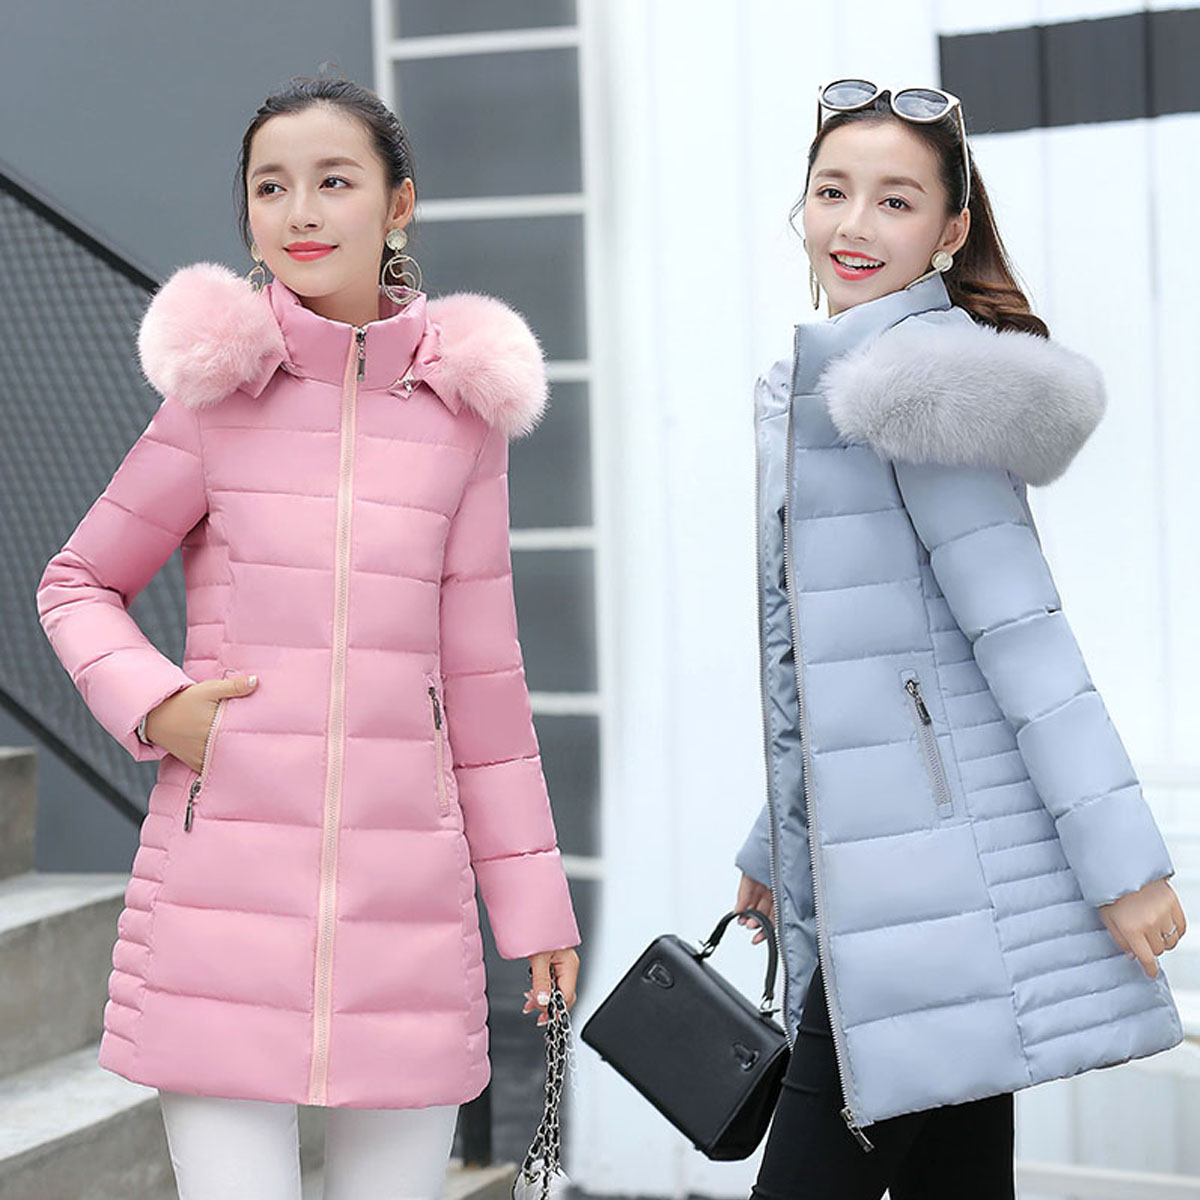 2017 Winter women new fashion elegant big fur collar down cotton sweater in the long section female winter jacket size M-XXXL 2017 new winter women winter women in the long section of thick cotton coat fur collar jacket cold winter jacket size m xxl